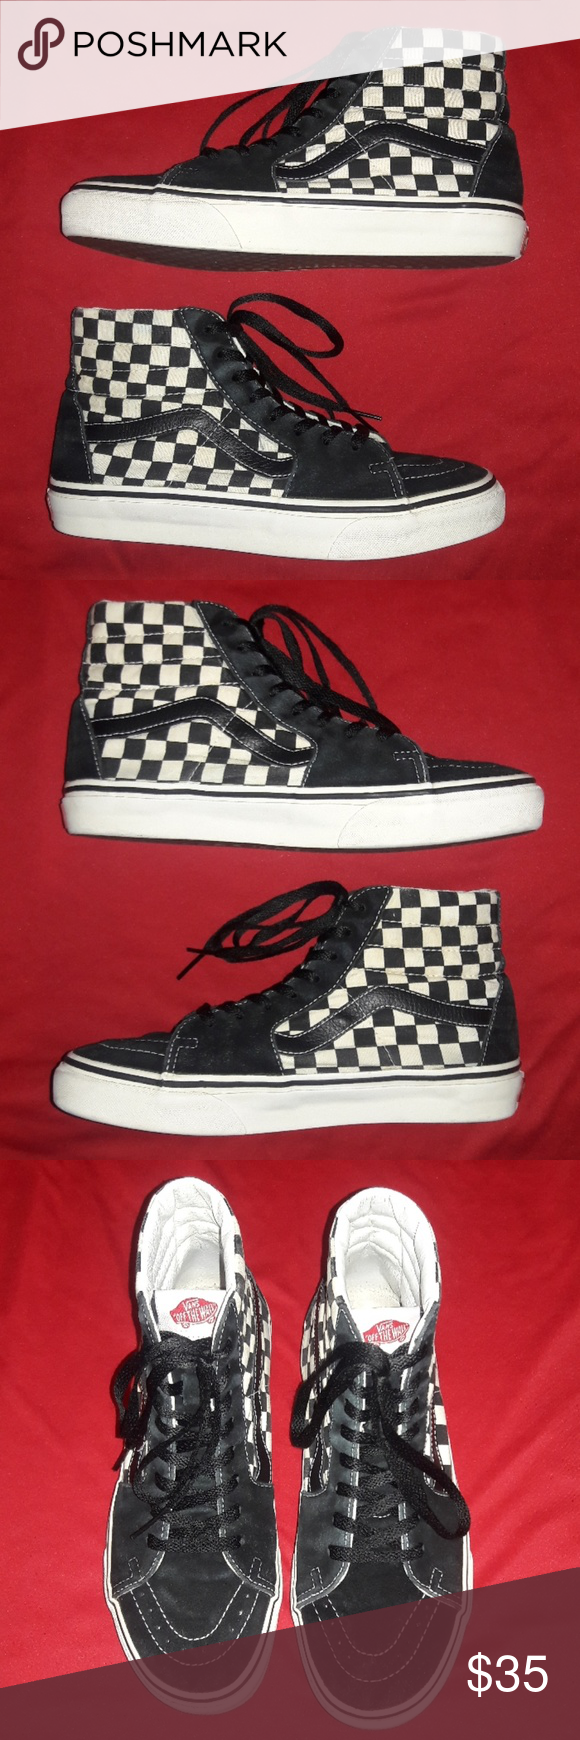 2fa592cc633384 I just added this listing on Poshmark  Checkered Vans Sneakers.   shopmycloset  poshmark  fashion  shopping  style  forsale  Vans  Other